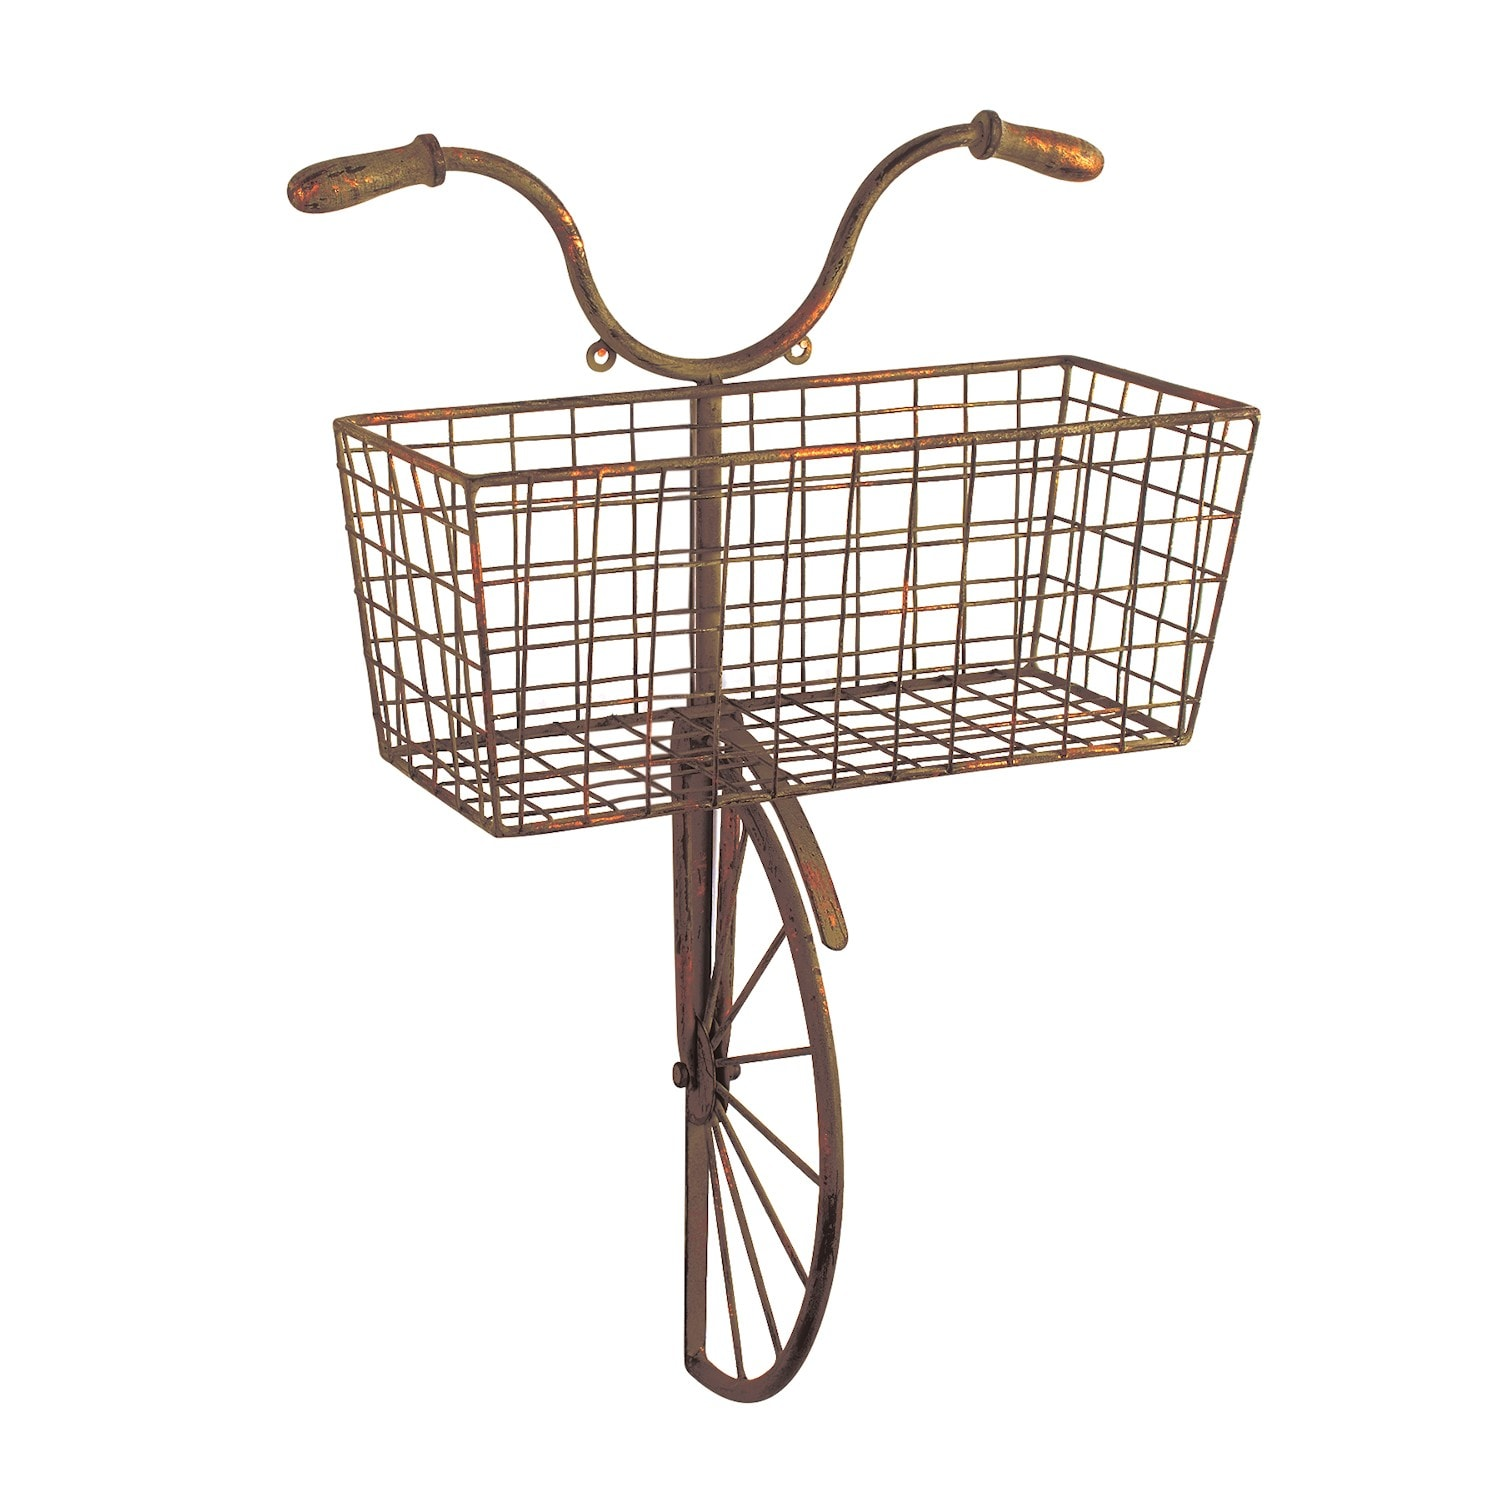 Details About Iron Bicycle Wall Decor Basket For Storage Magazine Rack Flower Pot Holder